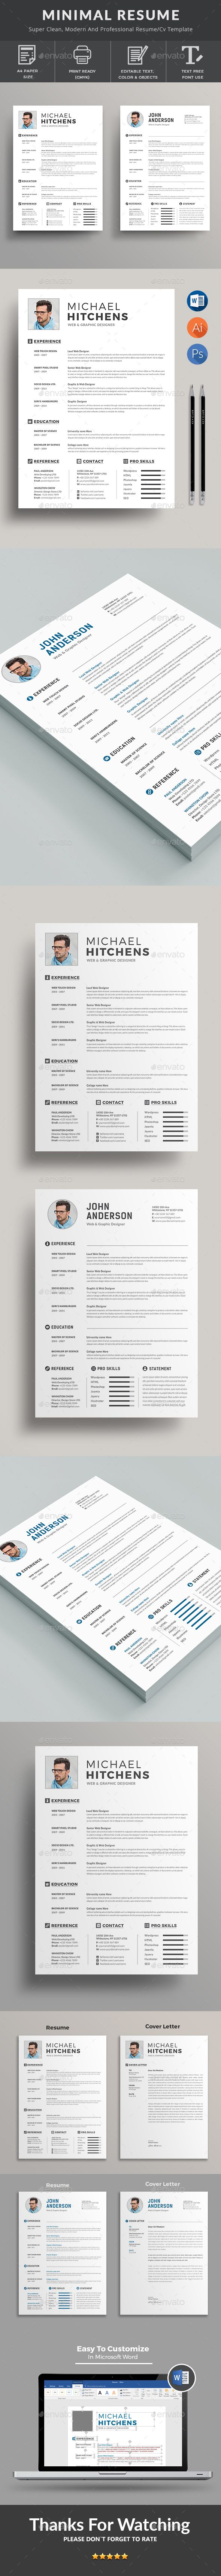 Resume Templates is the super clean The